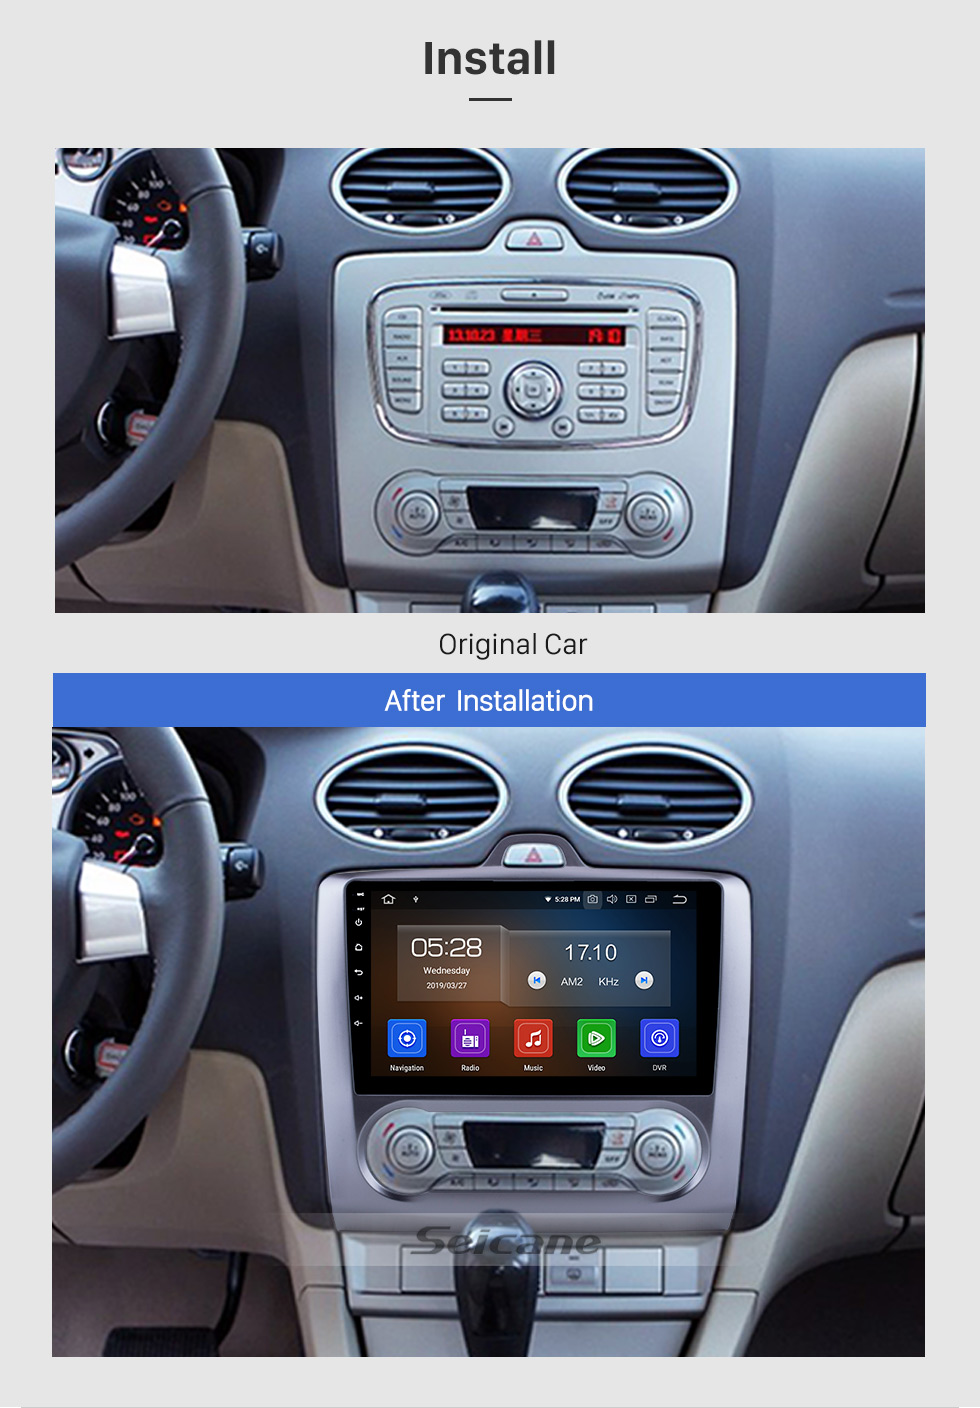 Seicane 10.1 Inch HD 1024*600 Android 9.0 2004-2011 Ford Focus 2 Bluetooth Radio GPS Navigation Car Stereo Touchscreen Mirror Link USB RDS DAB+ Steering Wheel Control